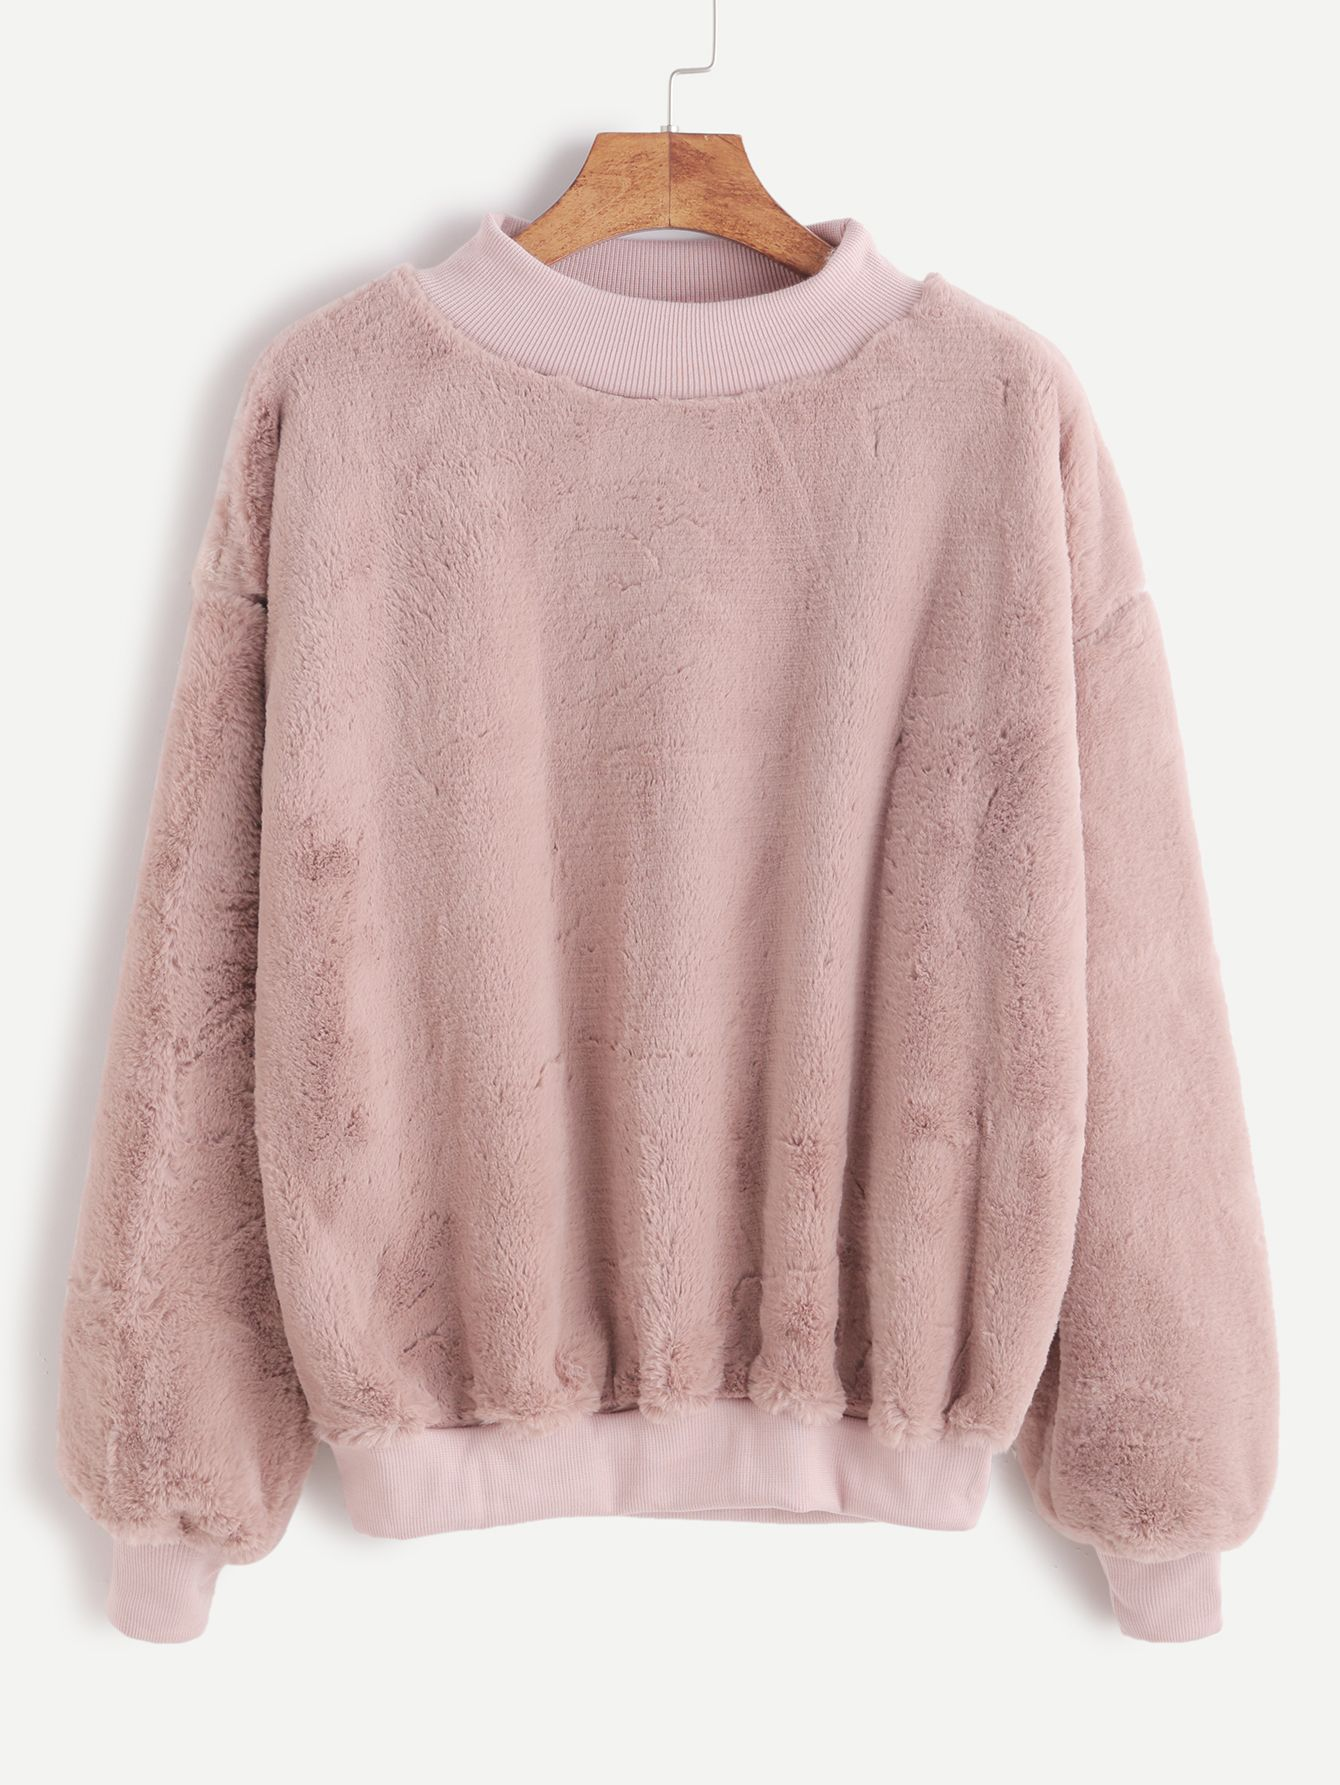 Contrast Ribbed Trim Drop Shoulder Fluffy Sweatshirt | Sweatshirts ...